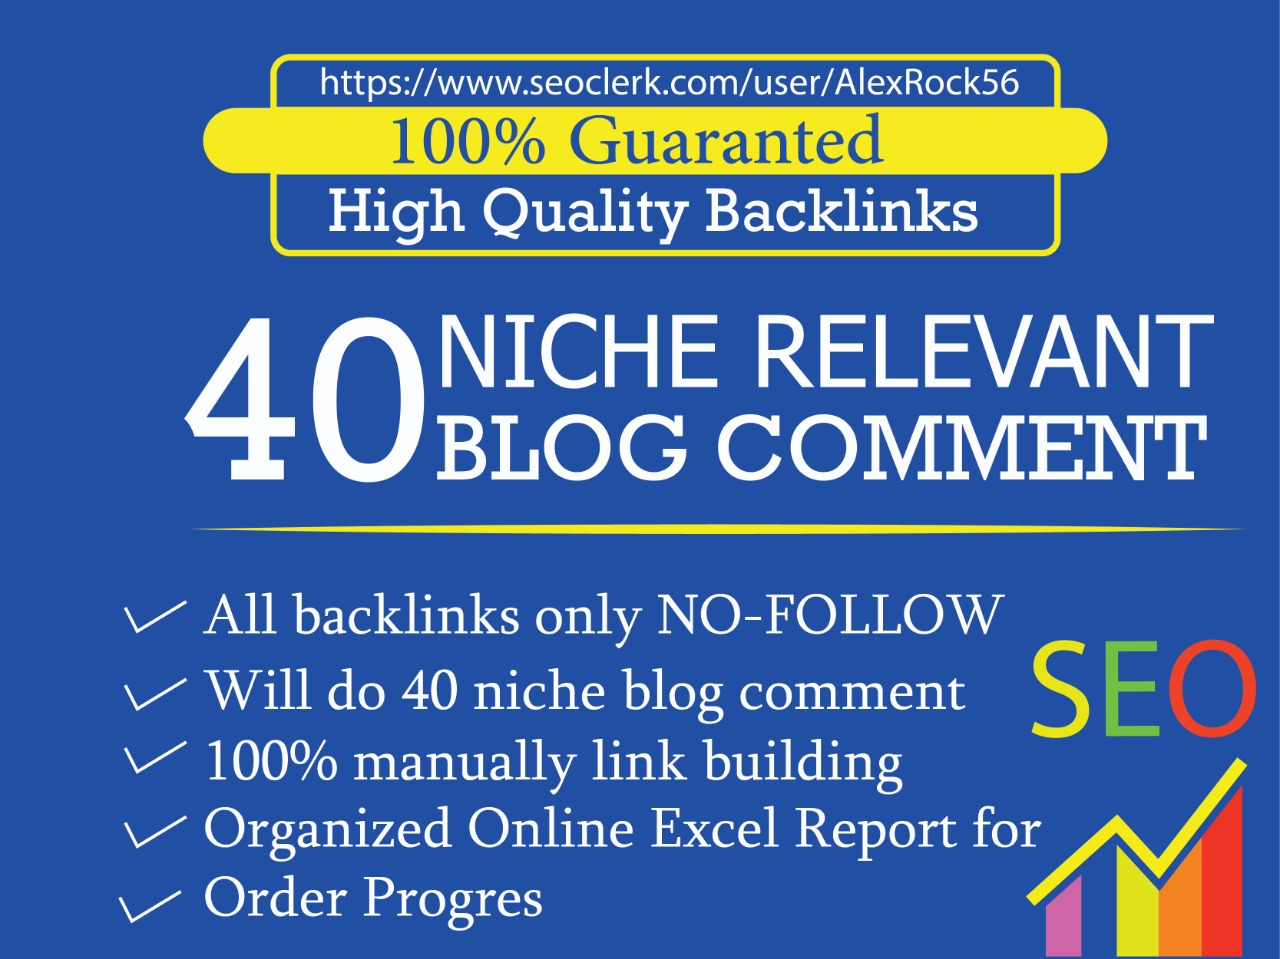 i will provide 40 niche relevant manual blog comments